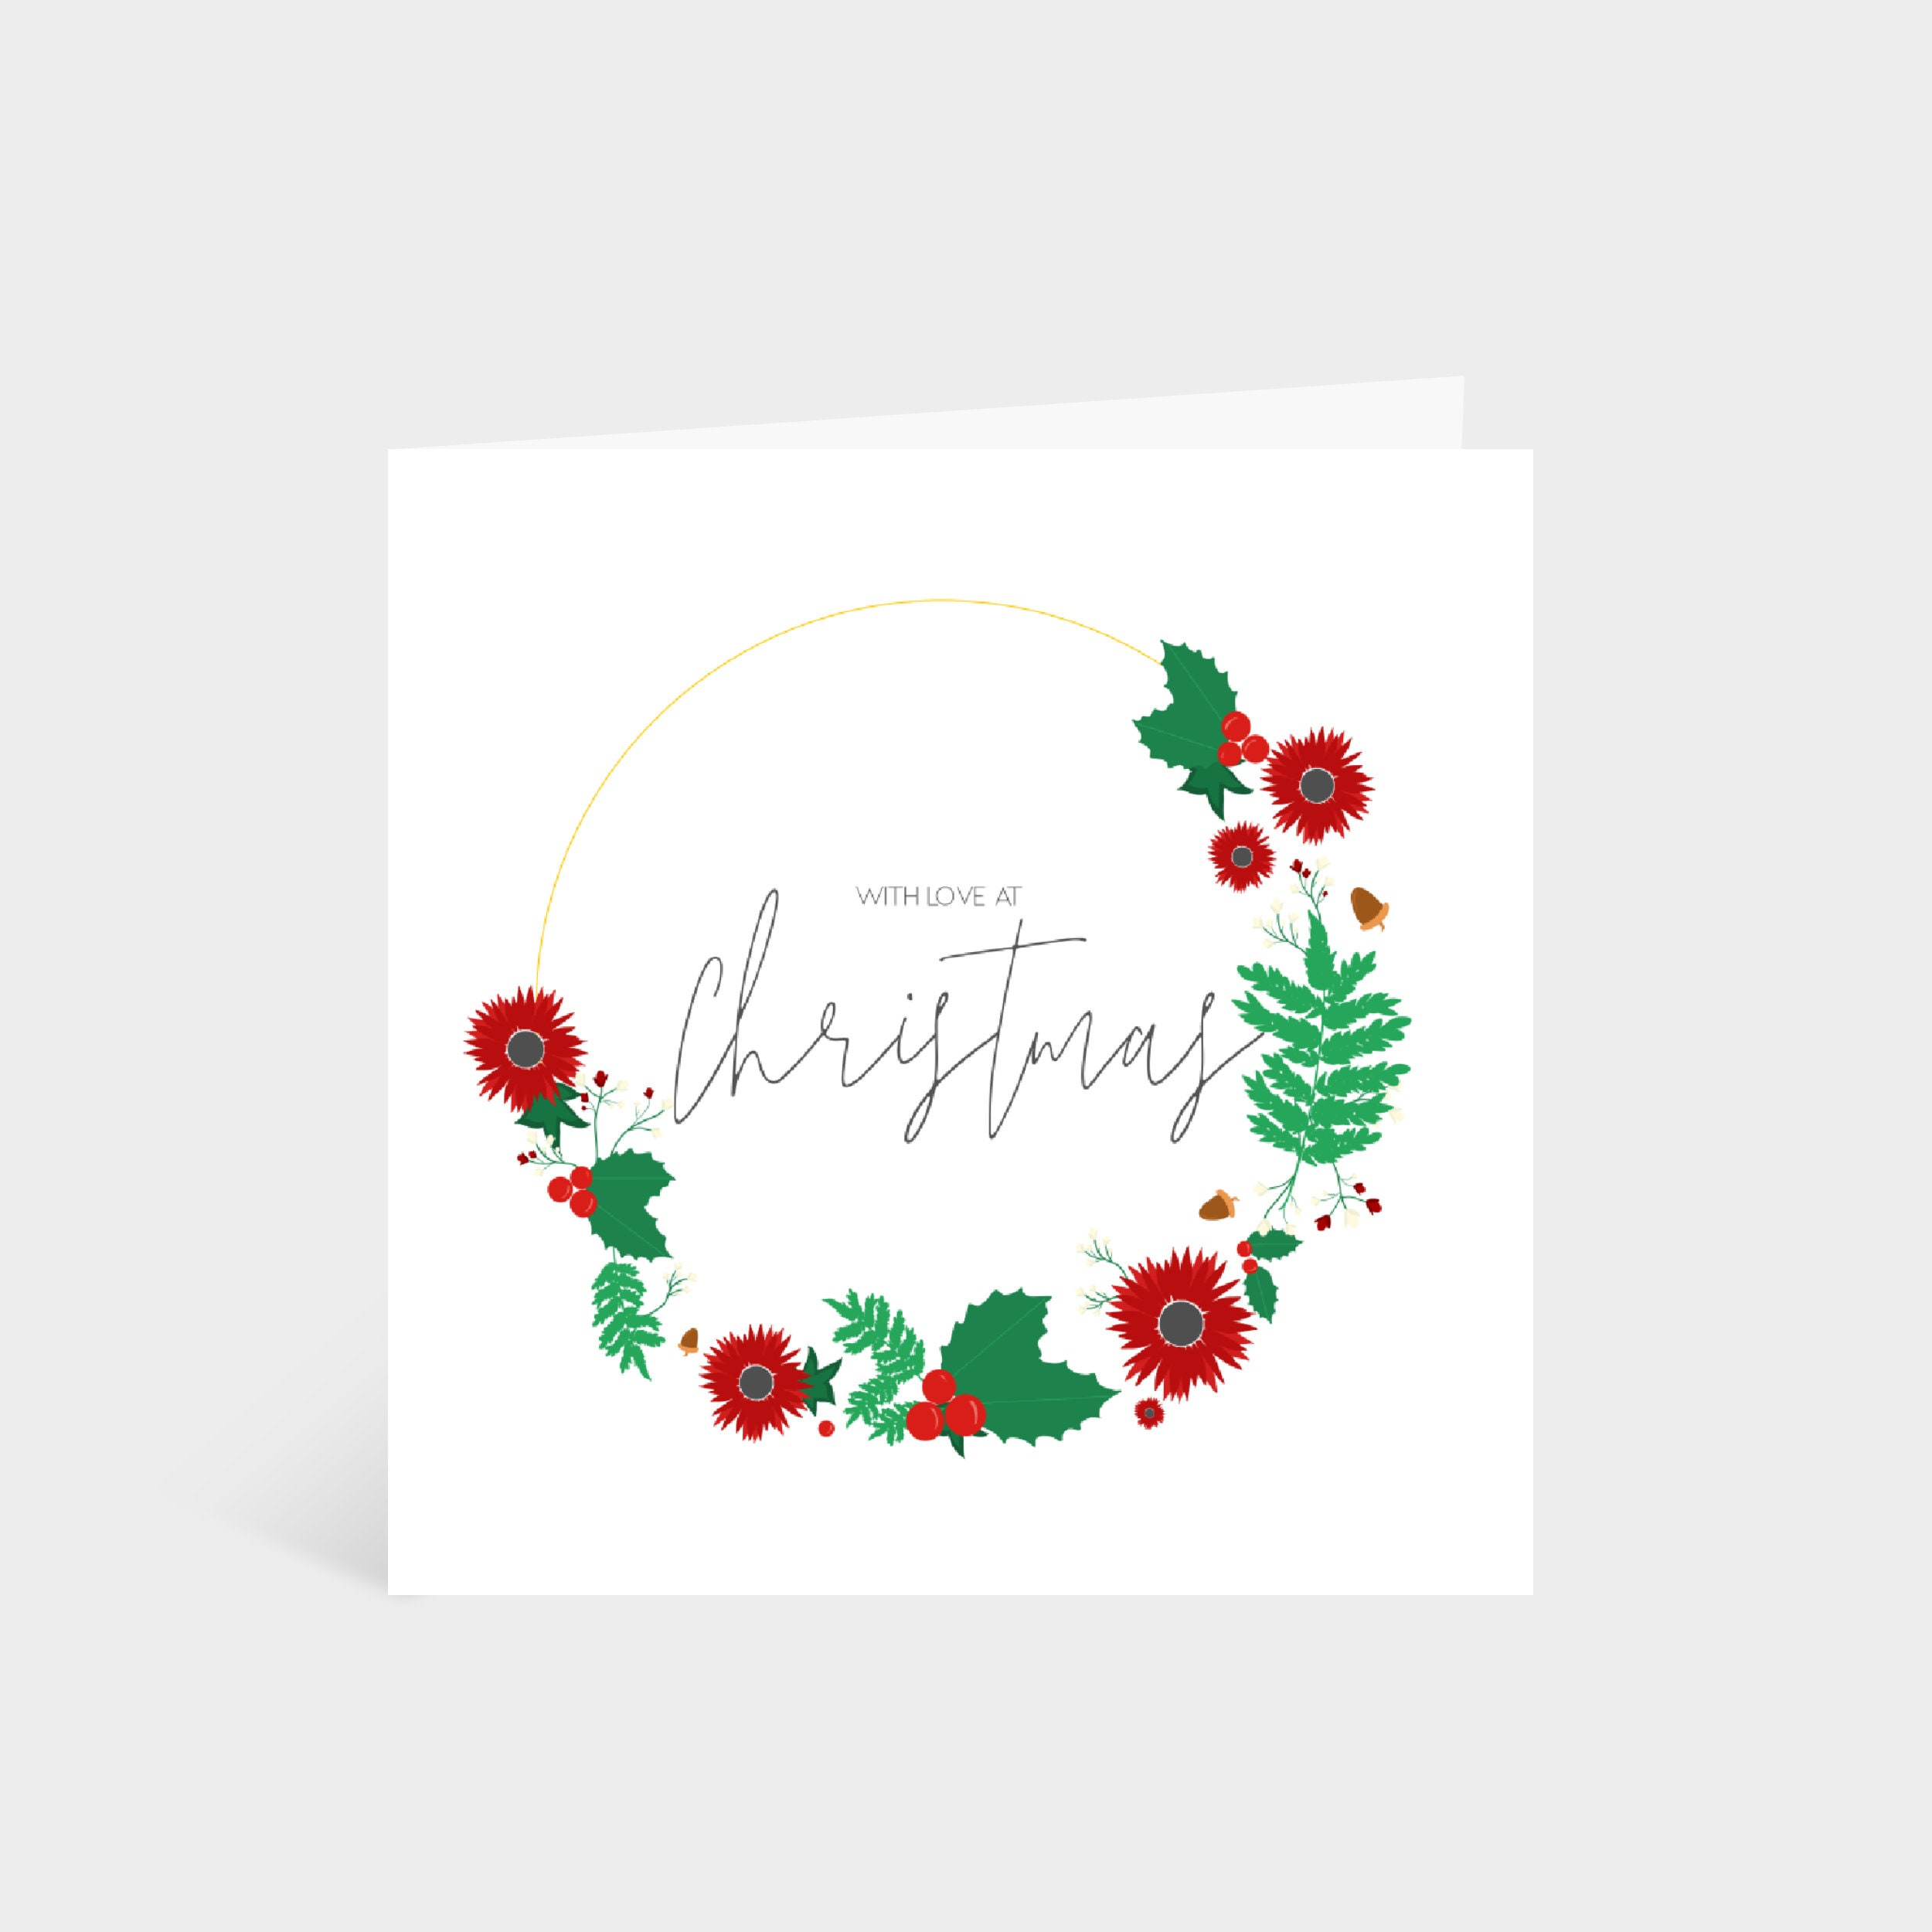 """Standing white square card with an illustrated Christmas wreath; says """"With love at Christmas"""" in a calligraphy font in the middle"""